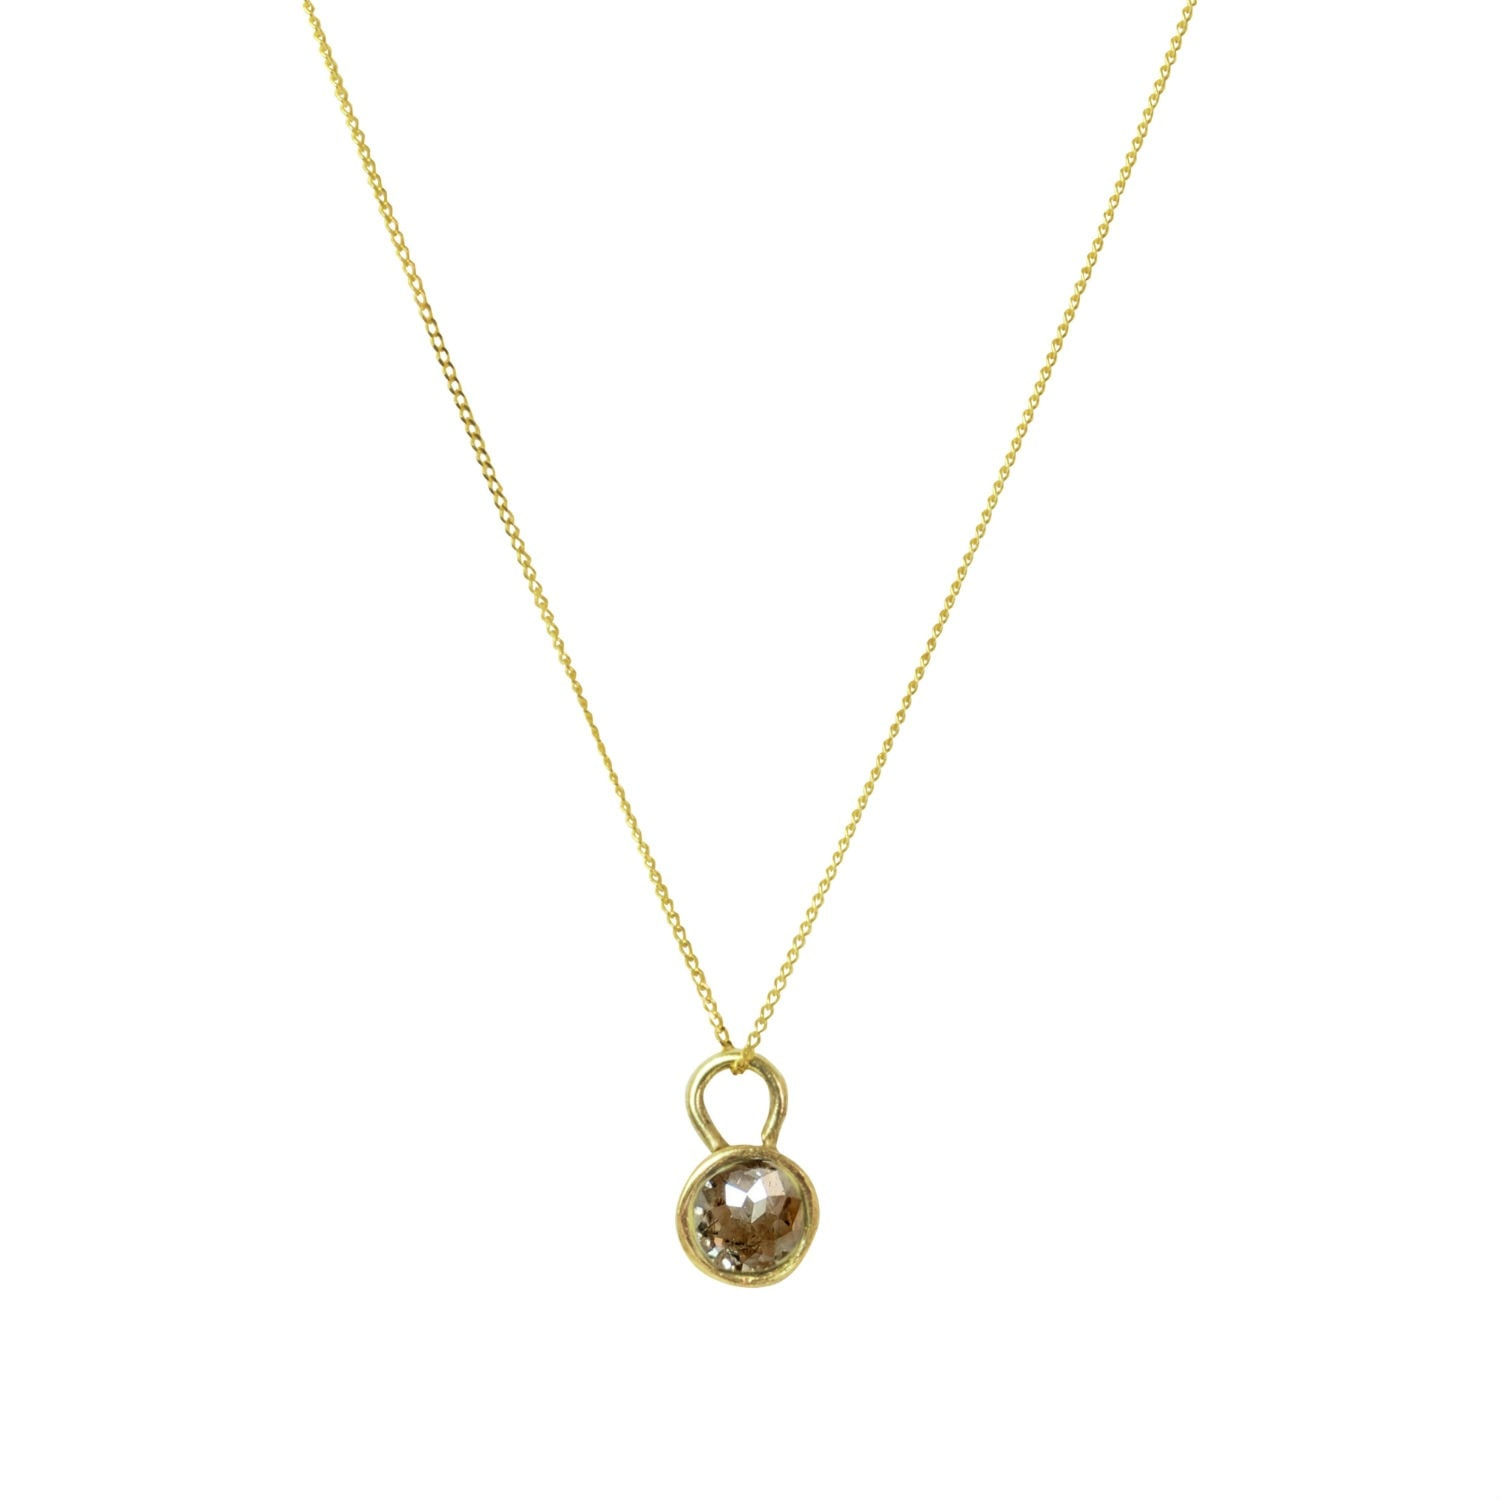 Lily Flo Jewellery - Champagne Rose Cut Diamond Pendant Necklace on Gold